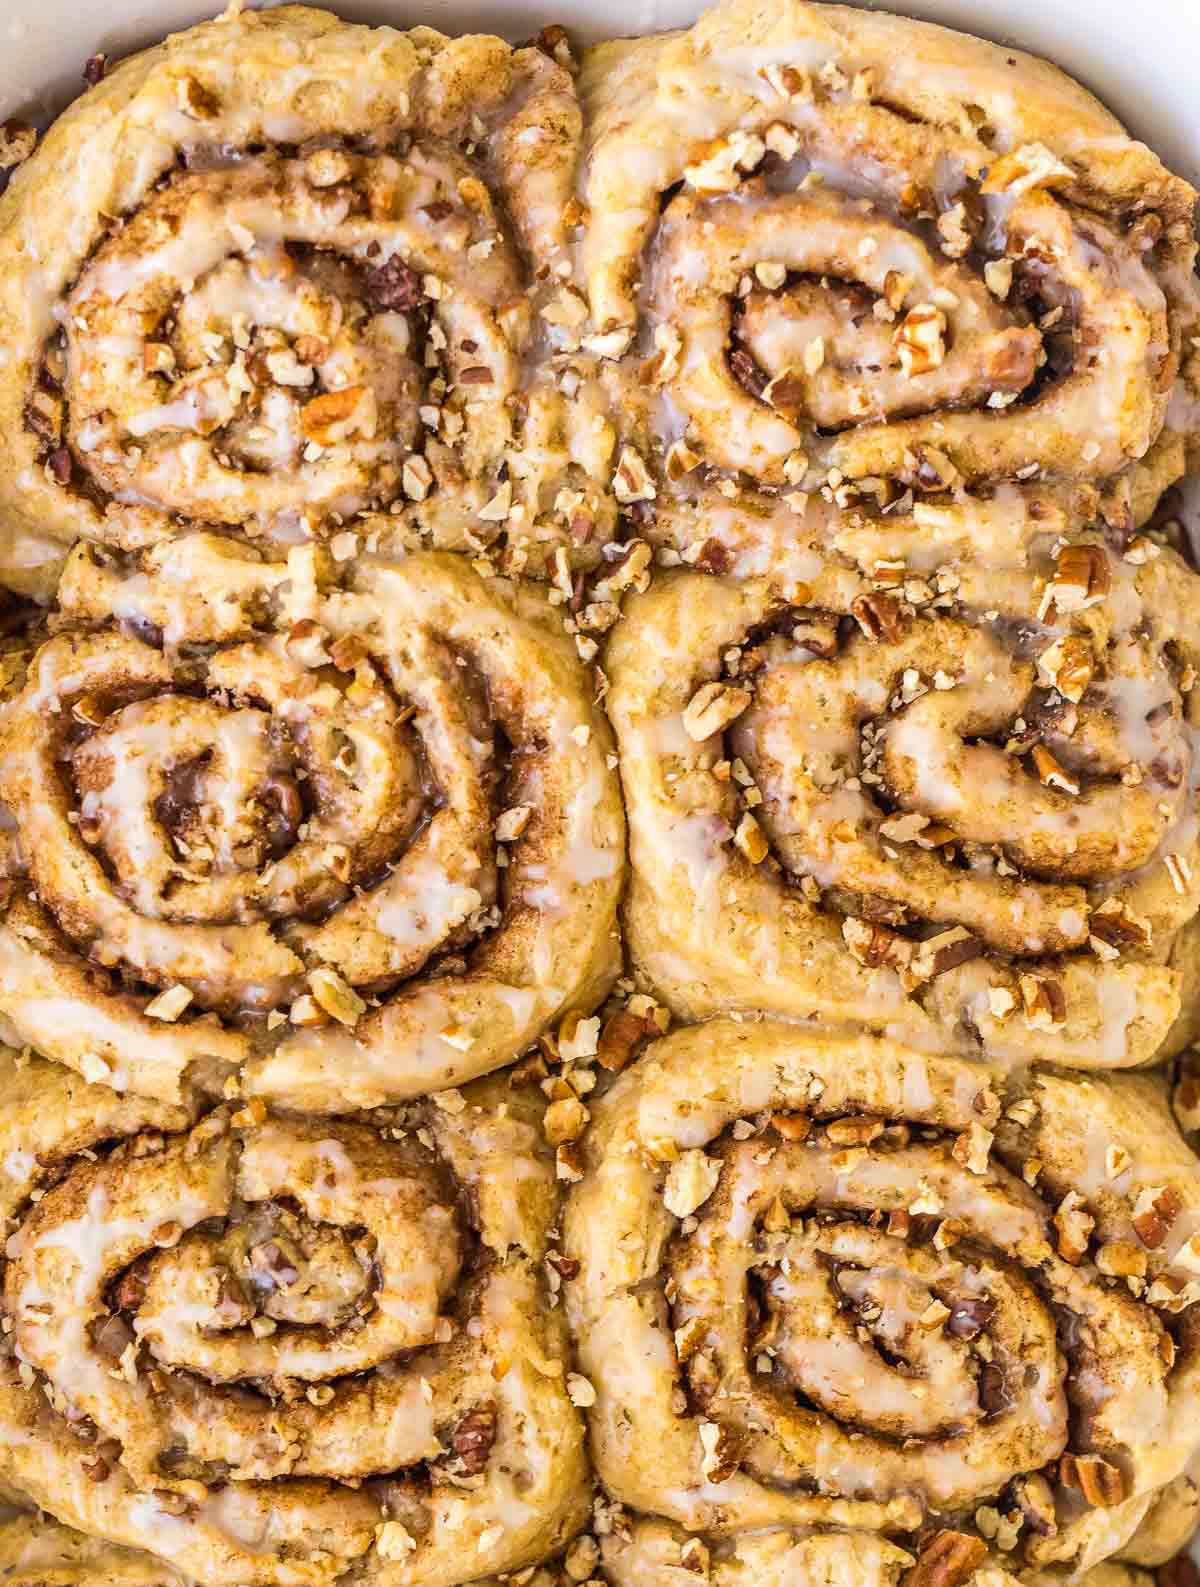 Homemade Biscuit Cinnamon Rolls – NO YEAST! This easy recipe uses buttermilk biscuit dough instead. Buttery, flakey, and packed with gooey cinnamon sugar filling. Recipe at wellplated.com | @wellplated